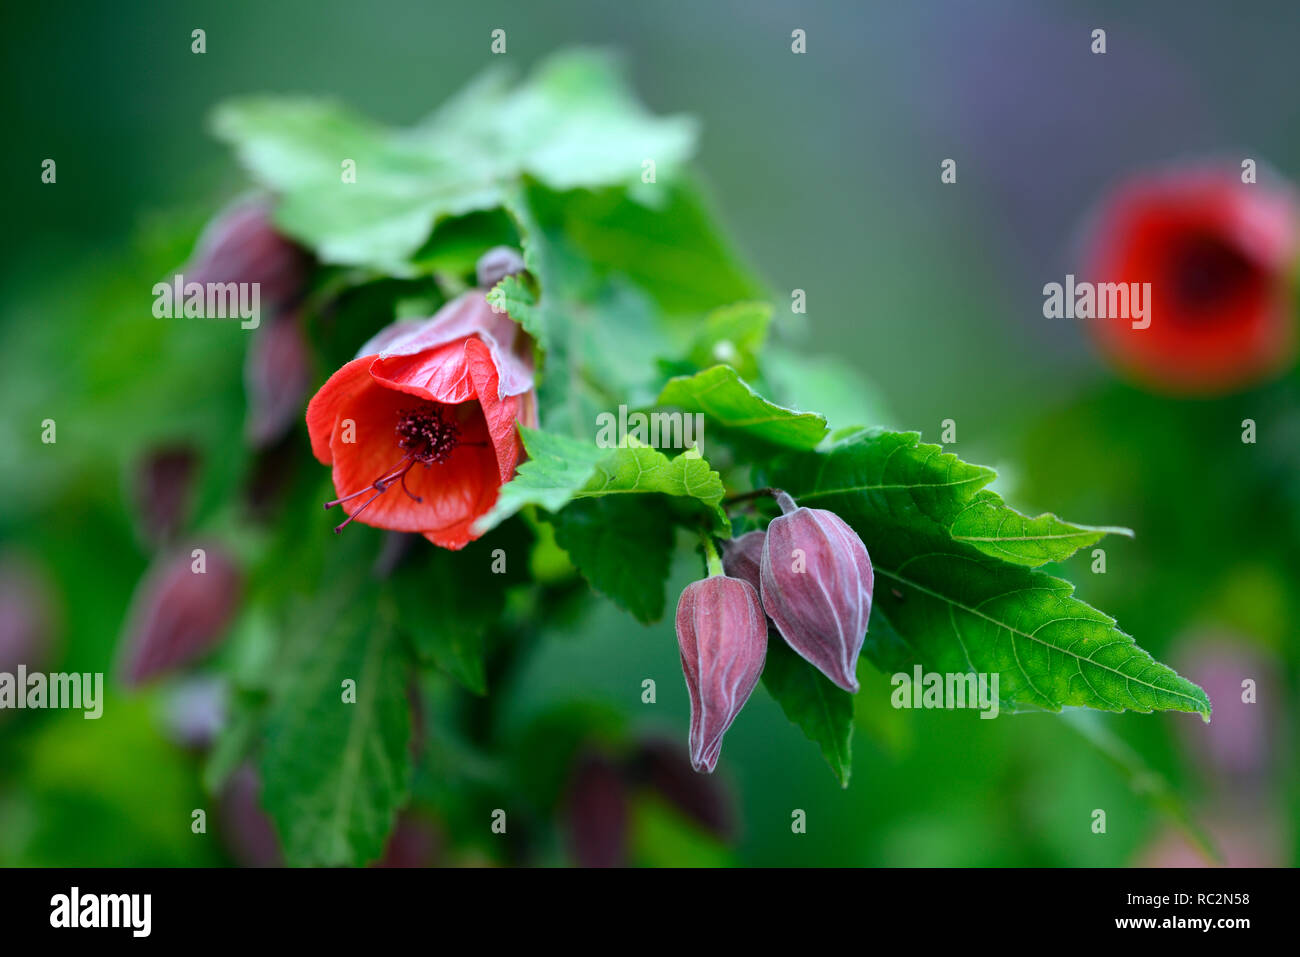 Abutilon x hybridum Red Emperor,abutilons,chinese lantern tree,flowering shrub,shrubs,orange red flowers,RM Floral - Stock Image